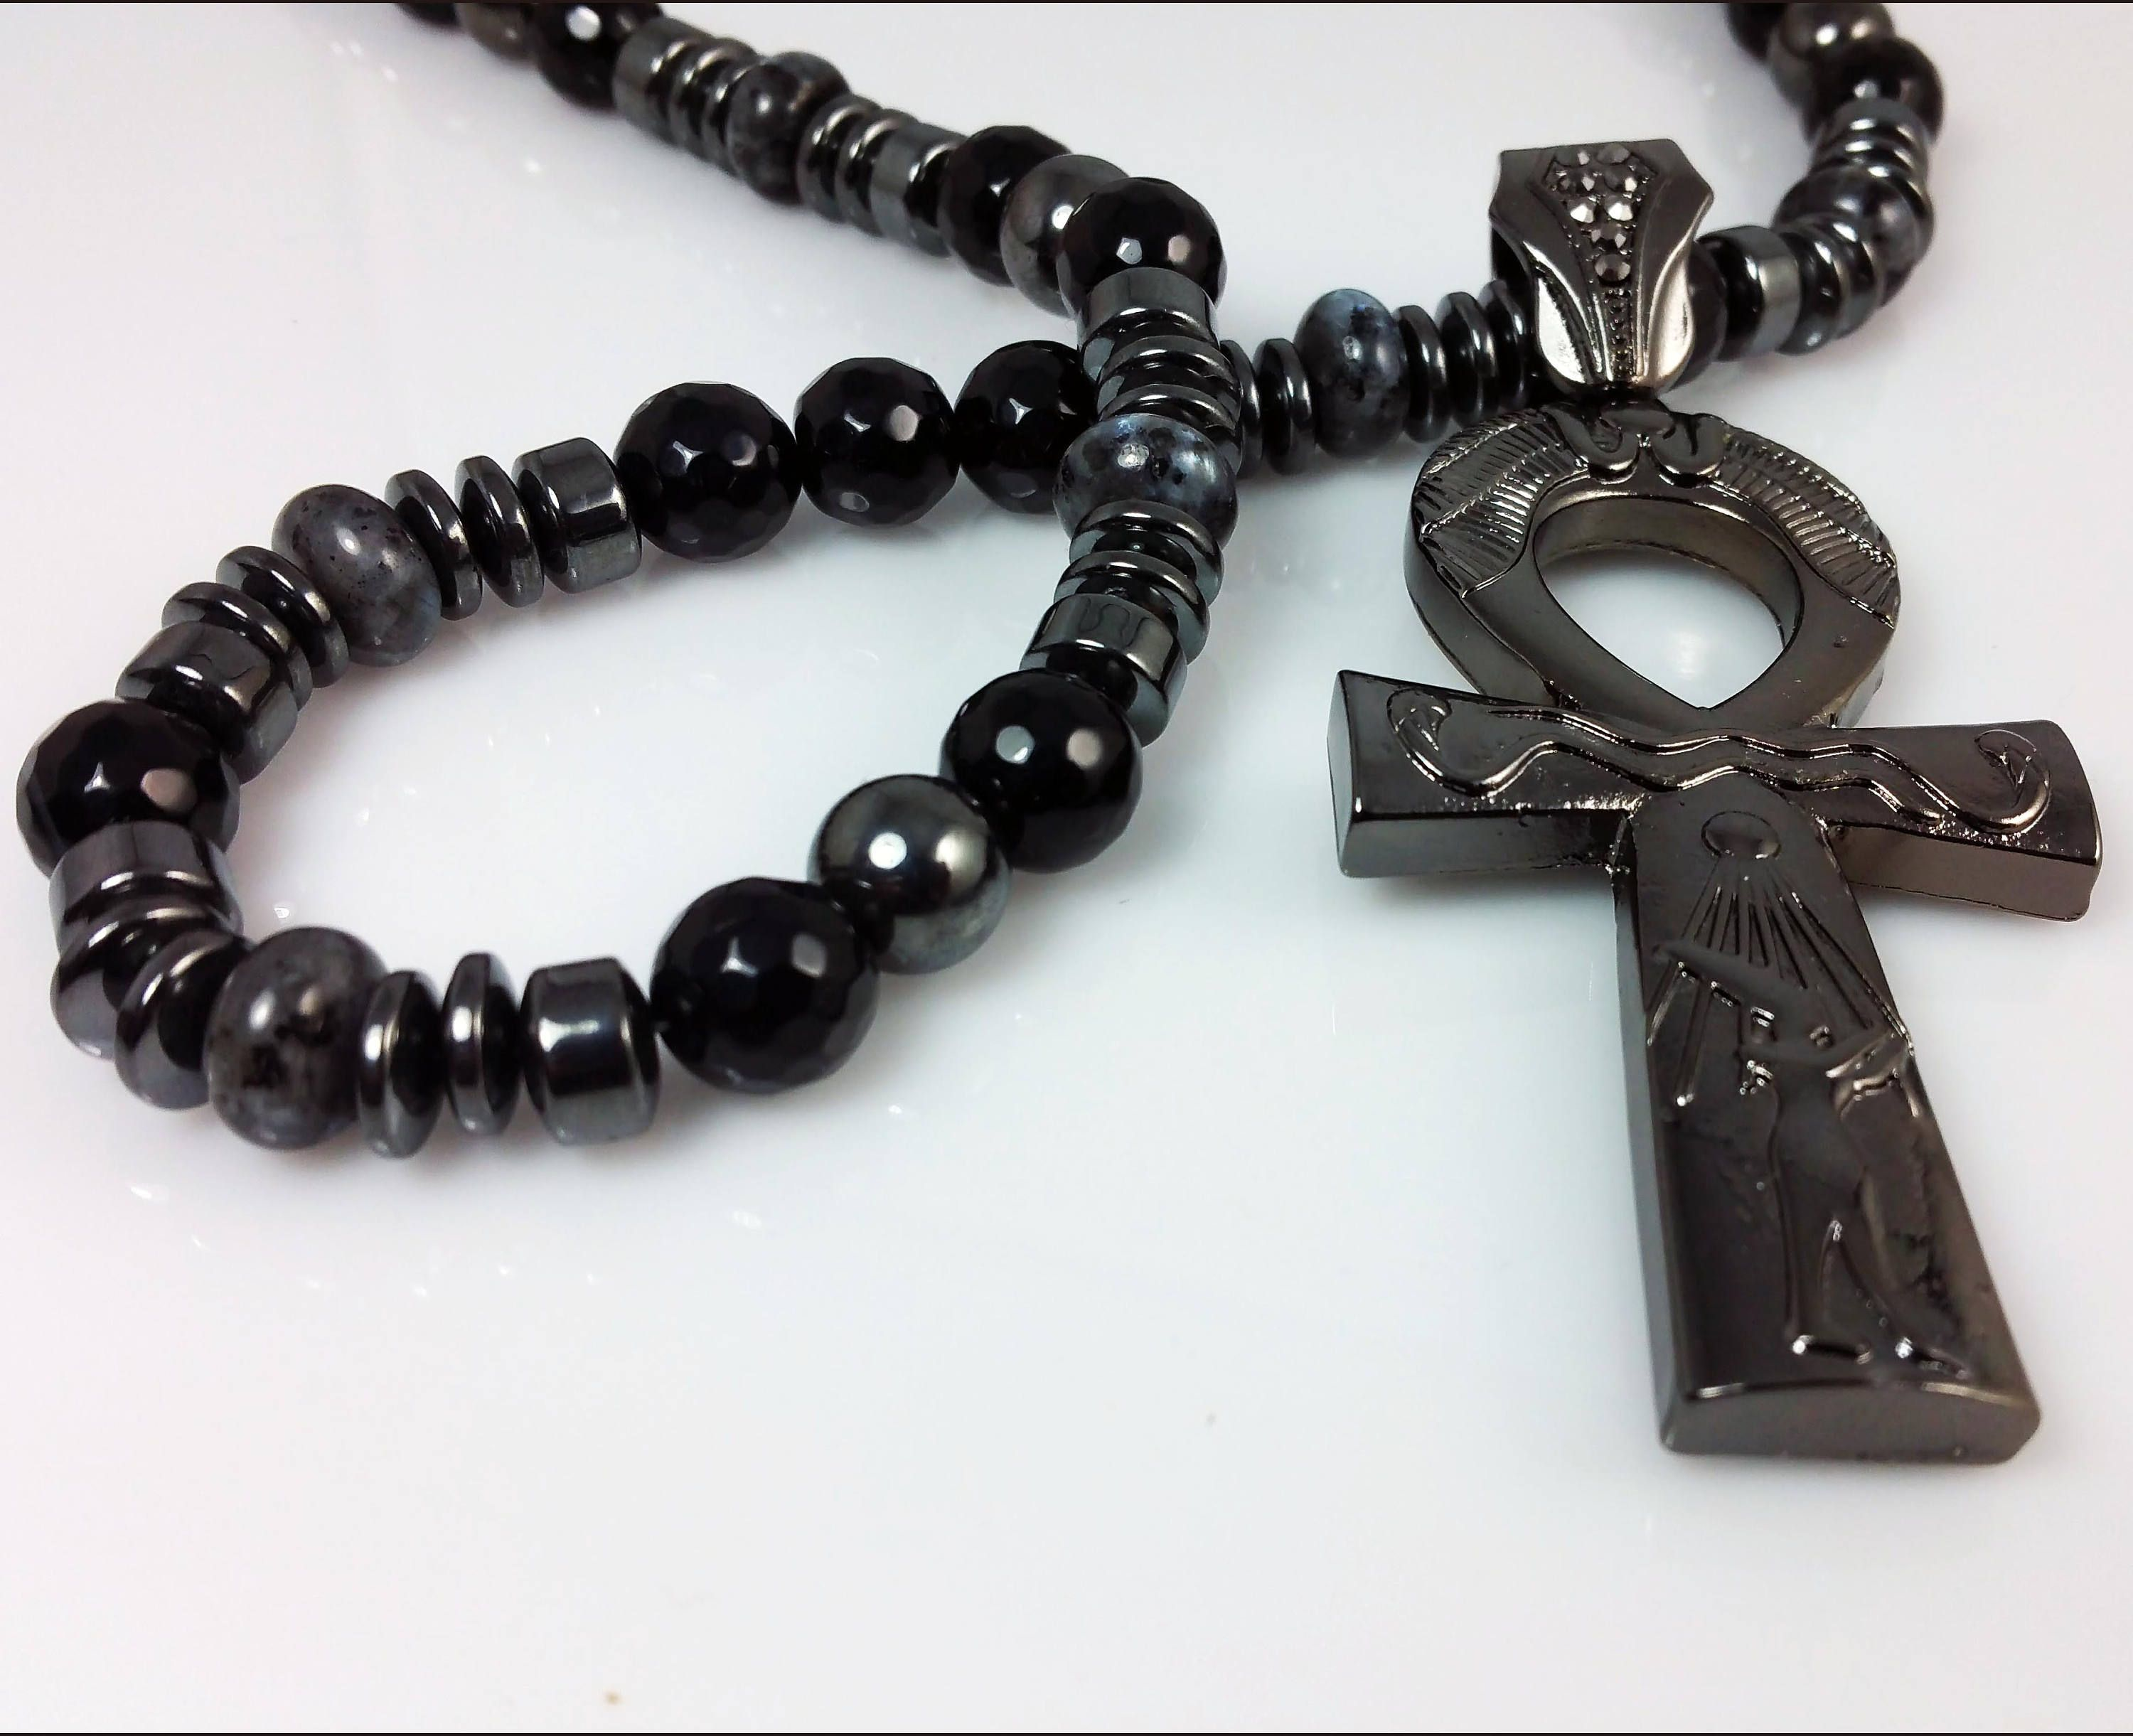 llc dsc anne gregory shop gallery bracelet bracelets heavenly jewellery rosary hematite jewelry